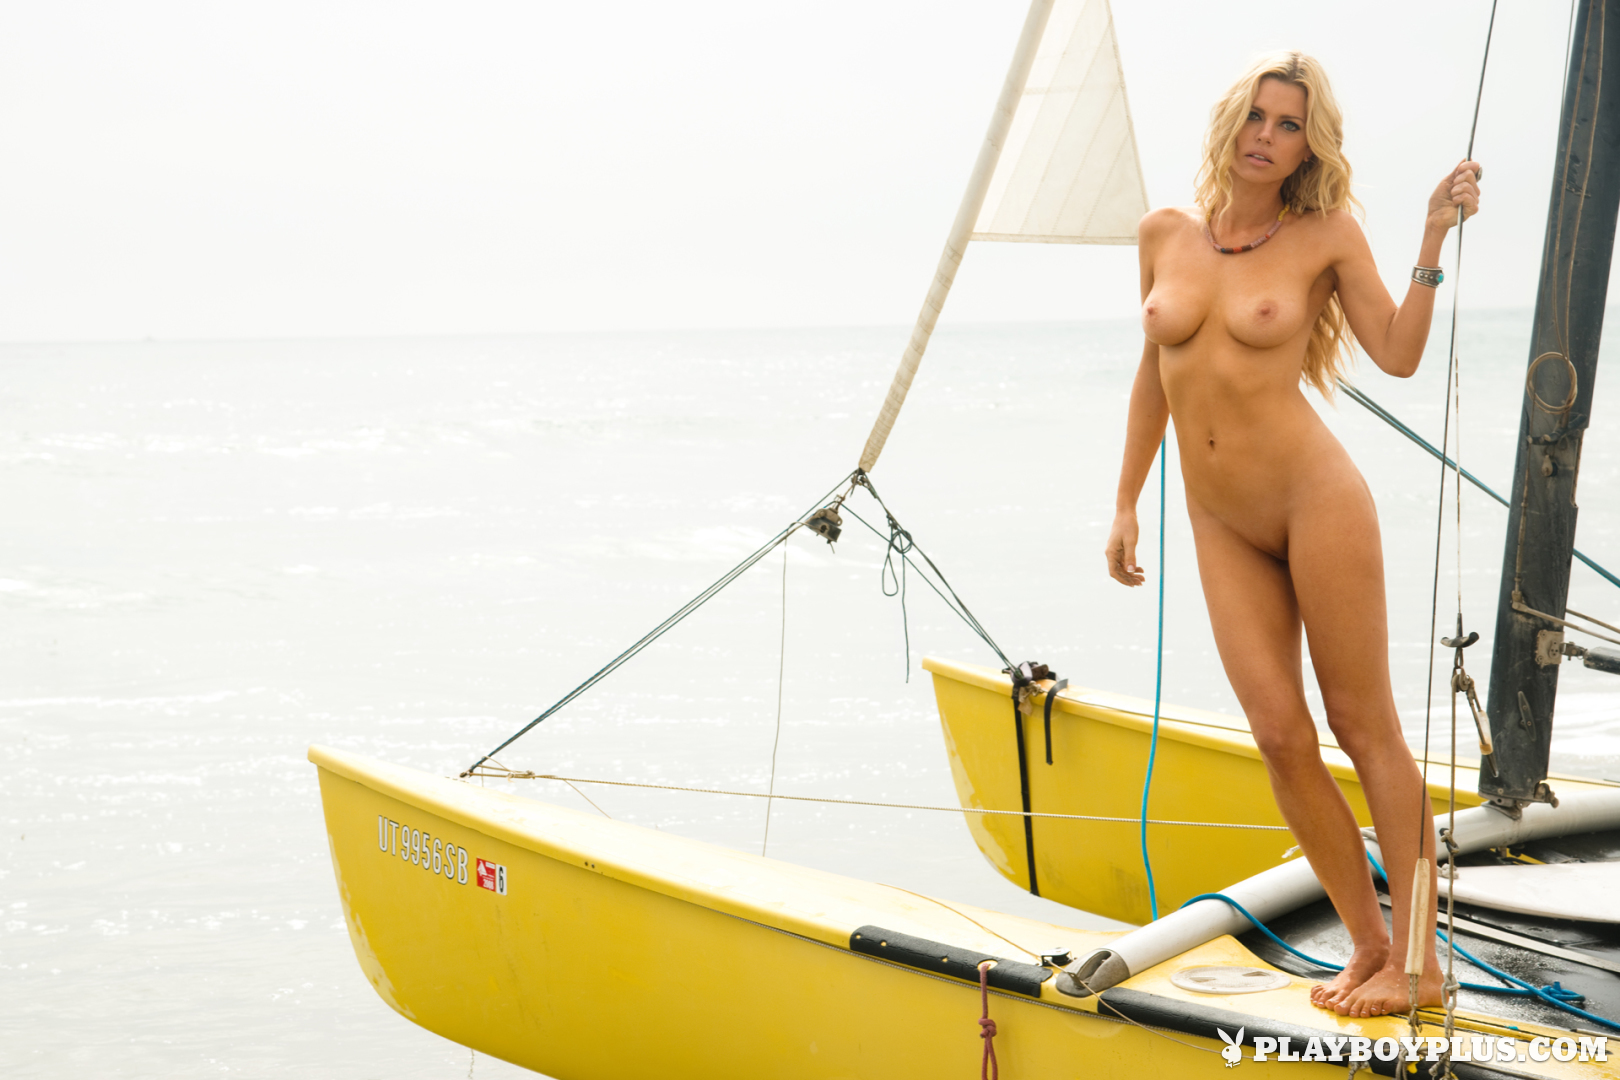 #TheFappening - FREE leaked Nude Celebrities pics videos